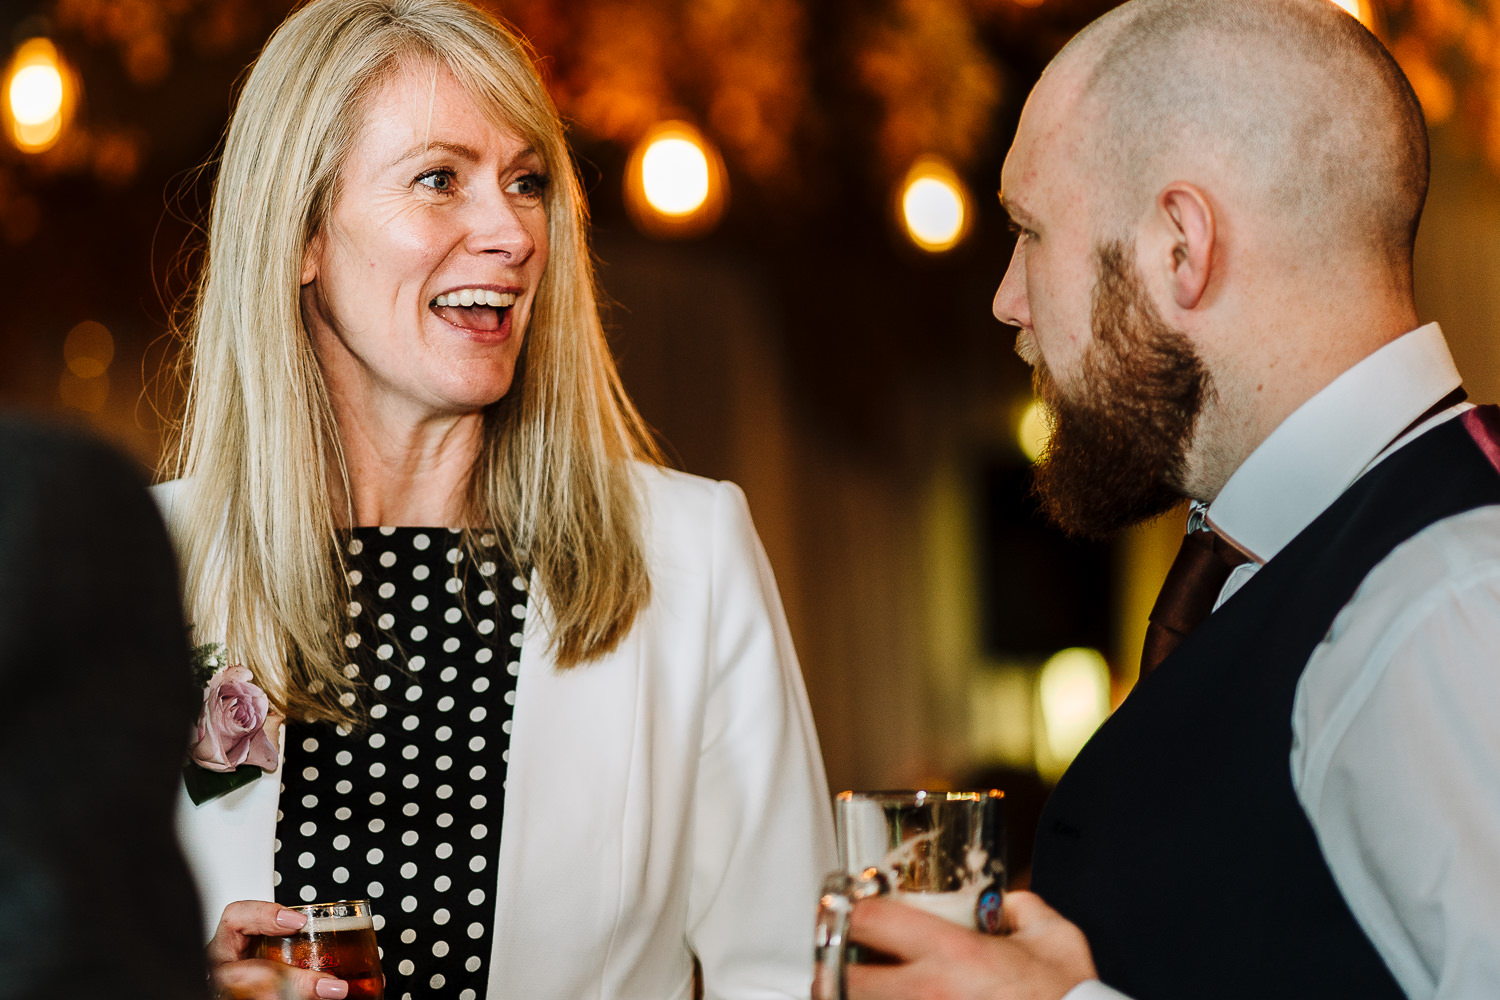 Guests laughing at Lancaster Brewery